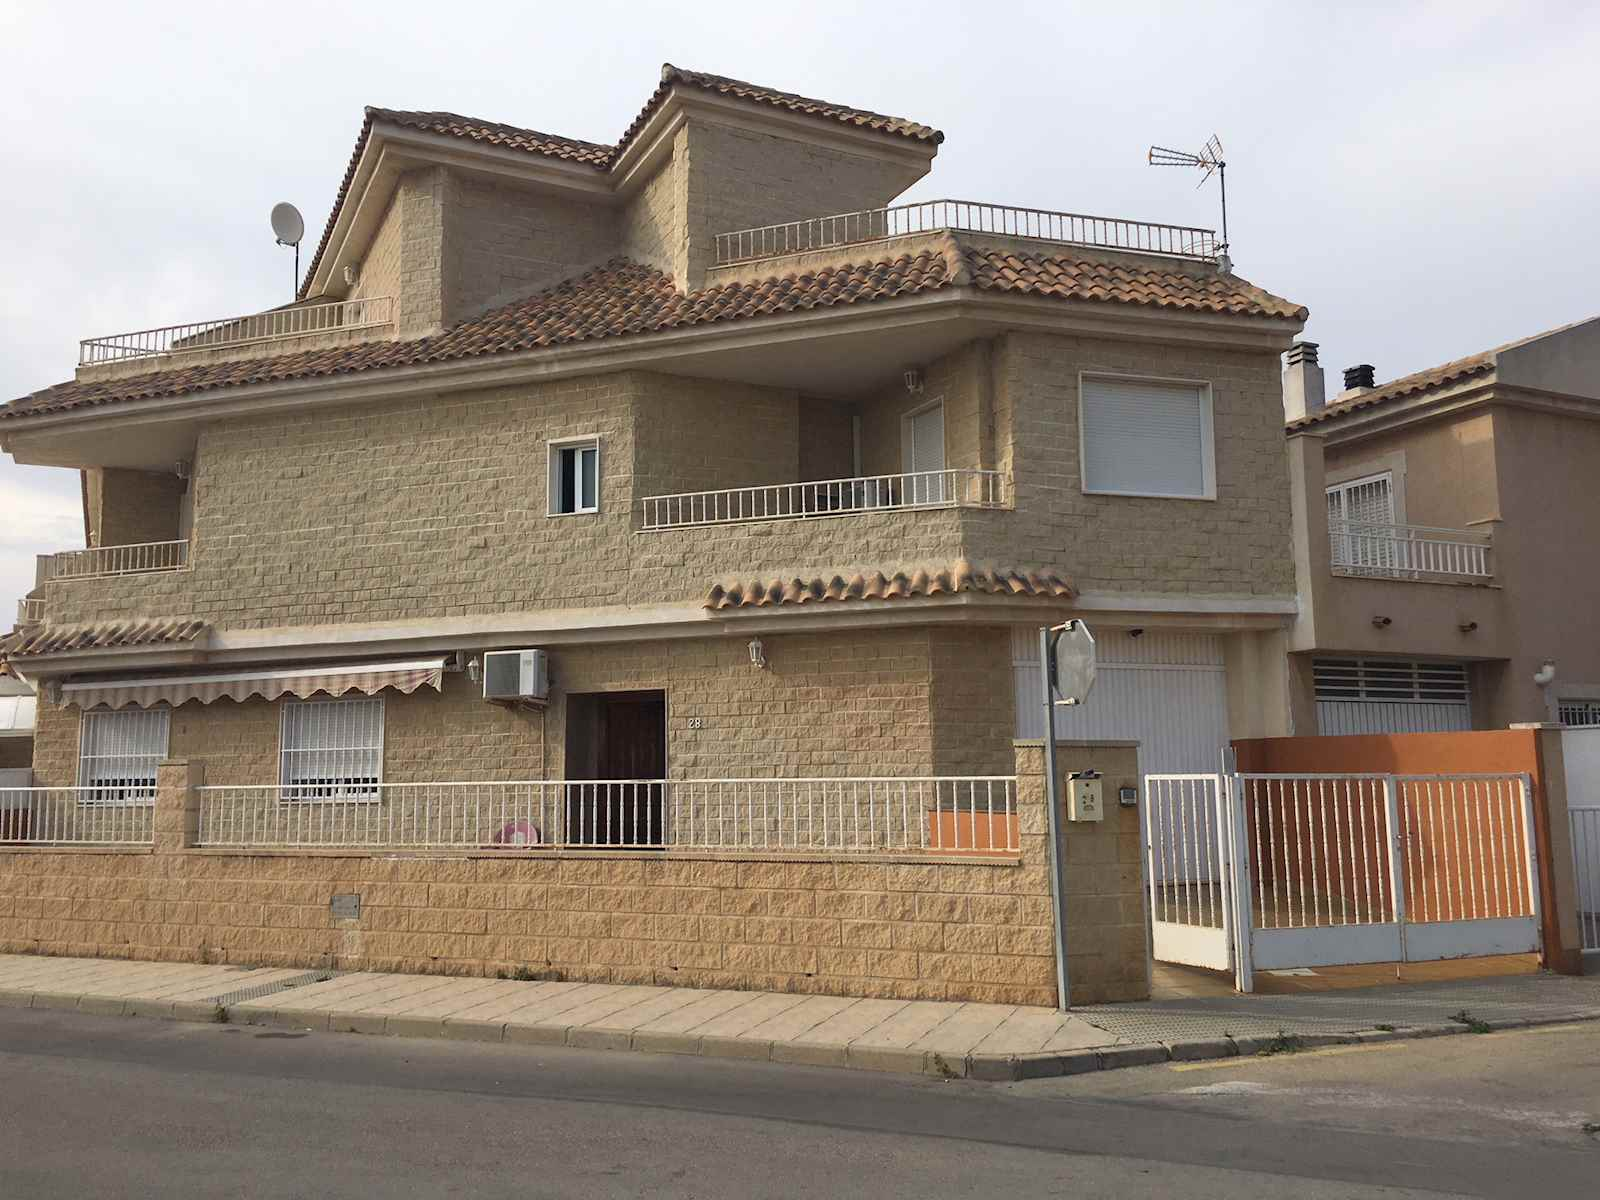 4 bedroom Townhouse for sale in San Pedro del Pinatar with garage - € 190,000 (Ref: 3946417)